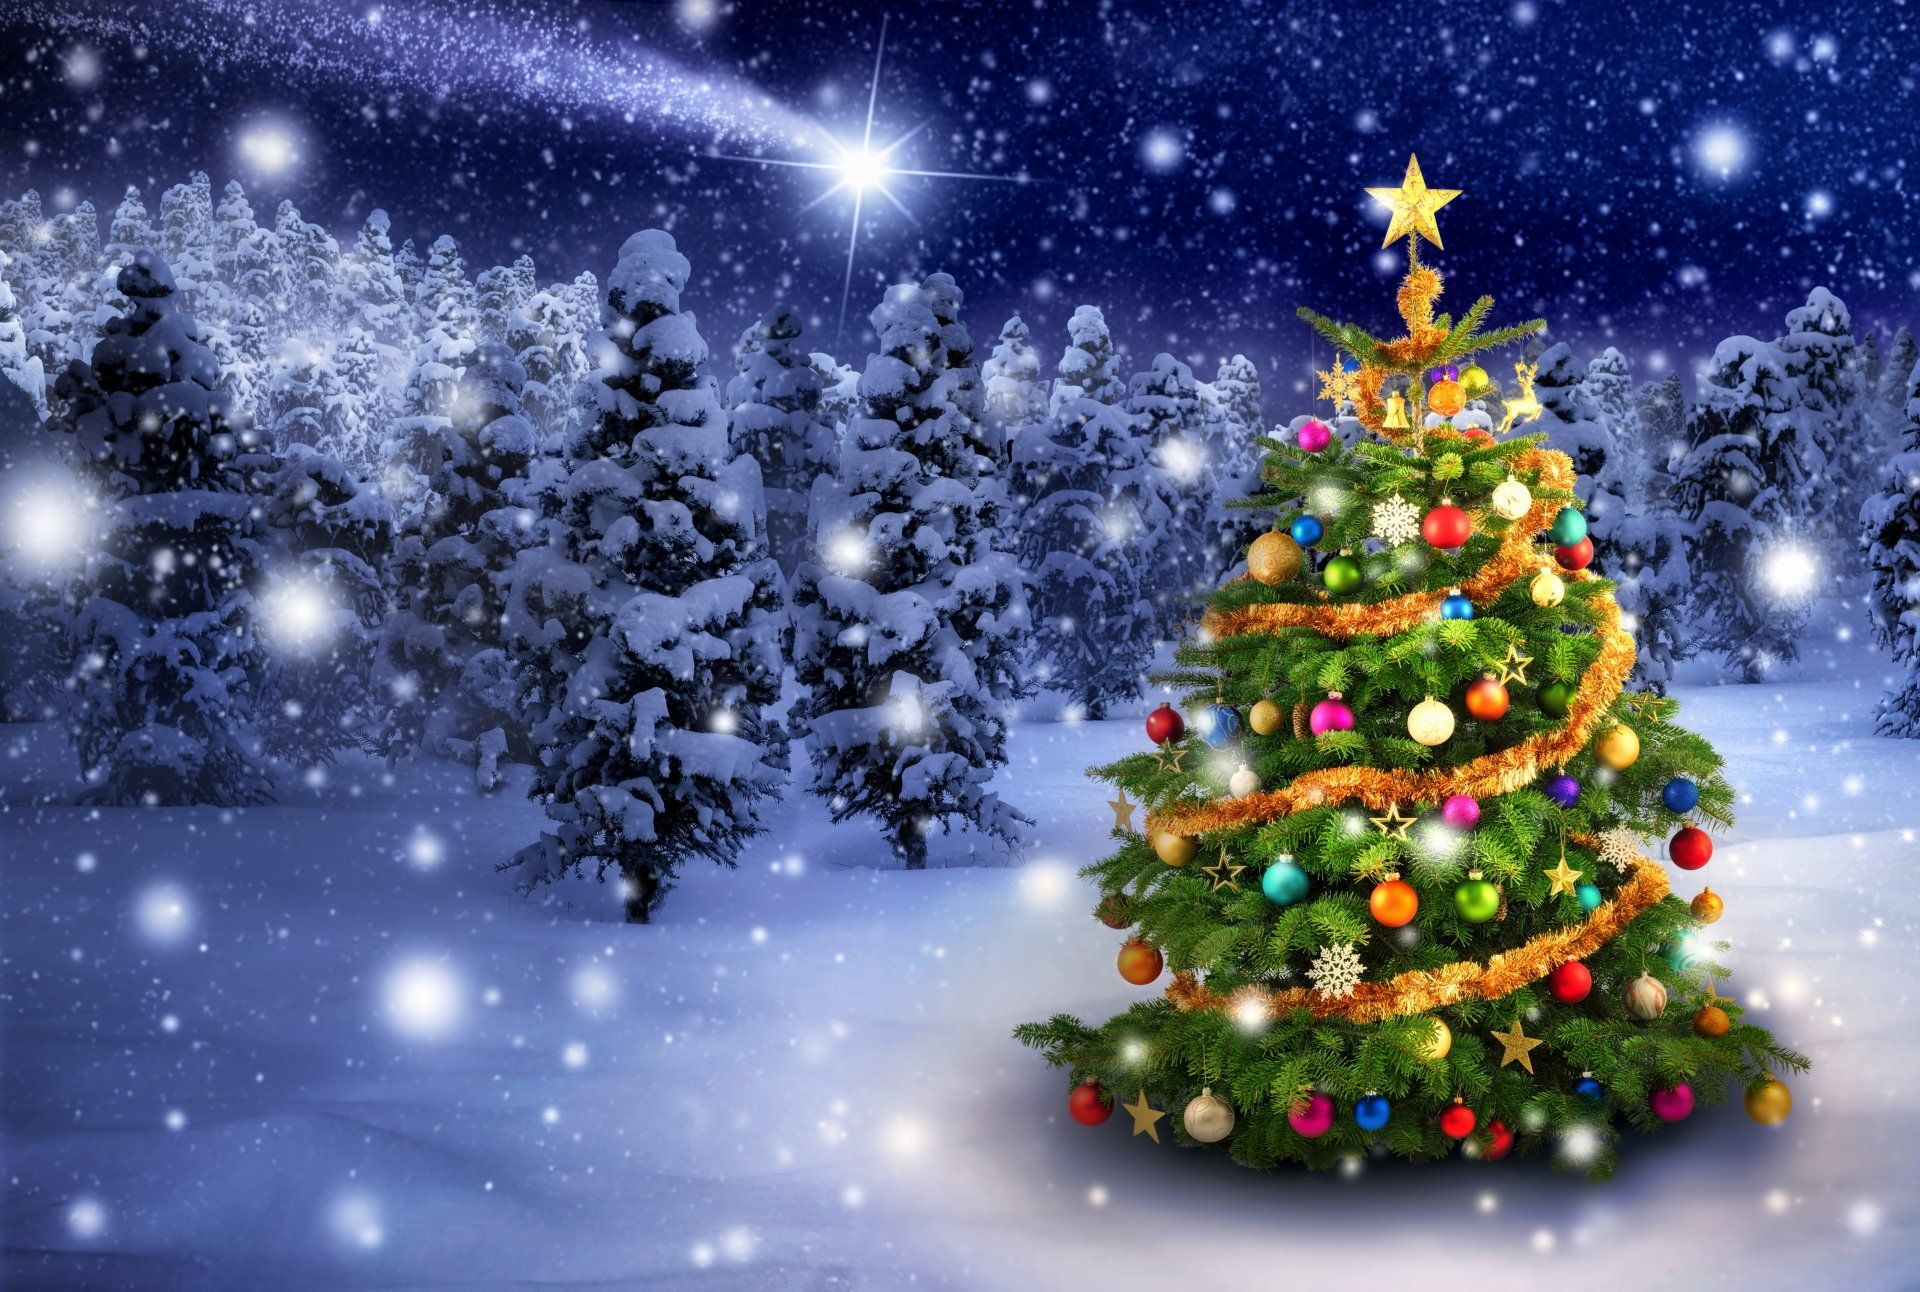 Holiday Christmas Holiday Christmas Tree Light Forest Snow Wallpaper